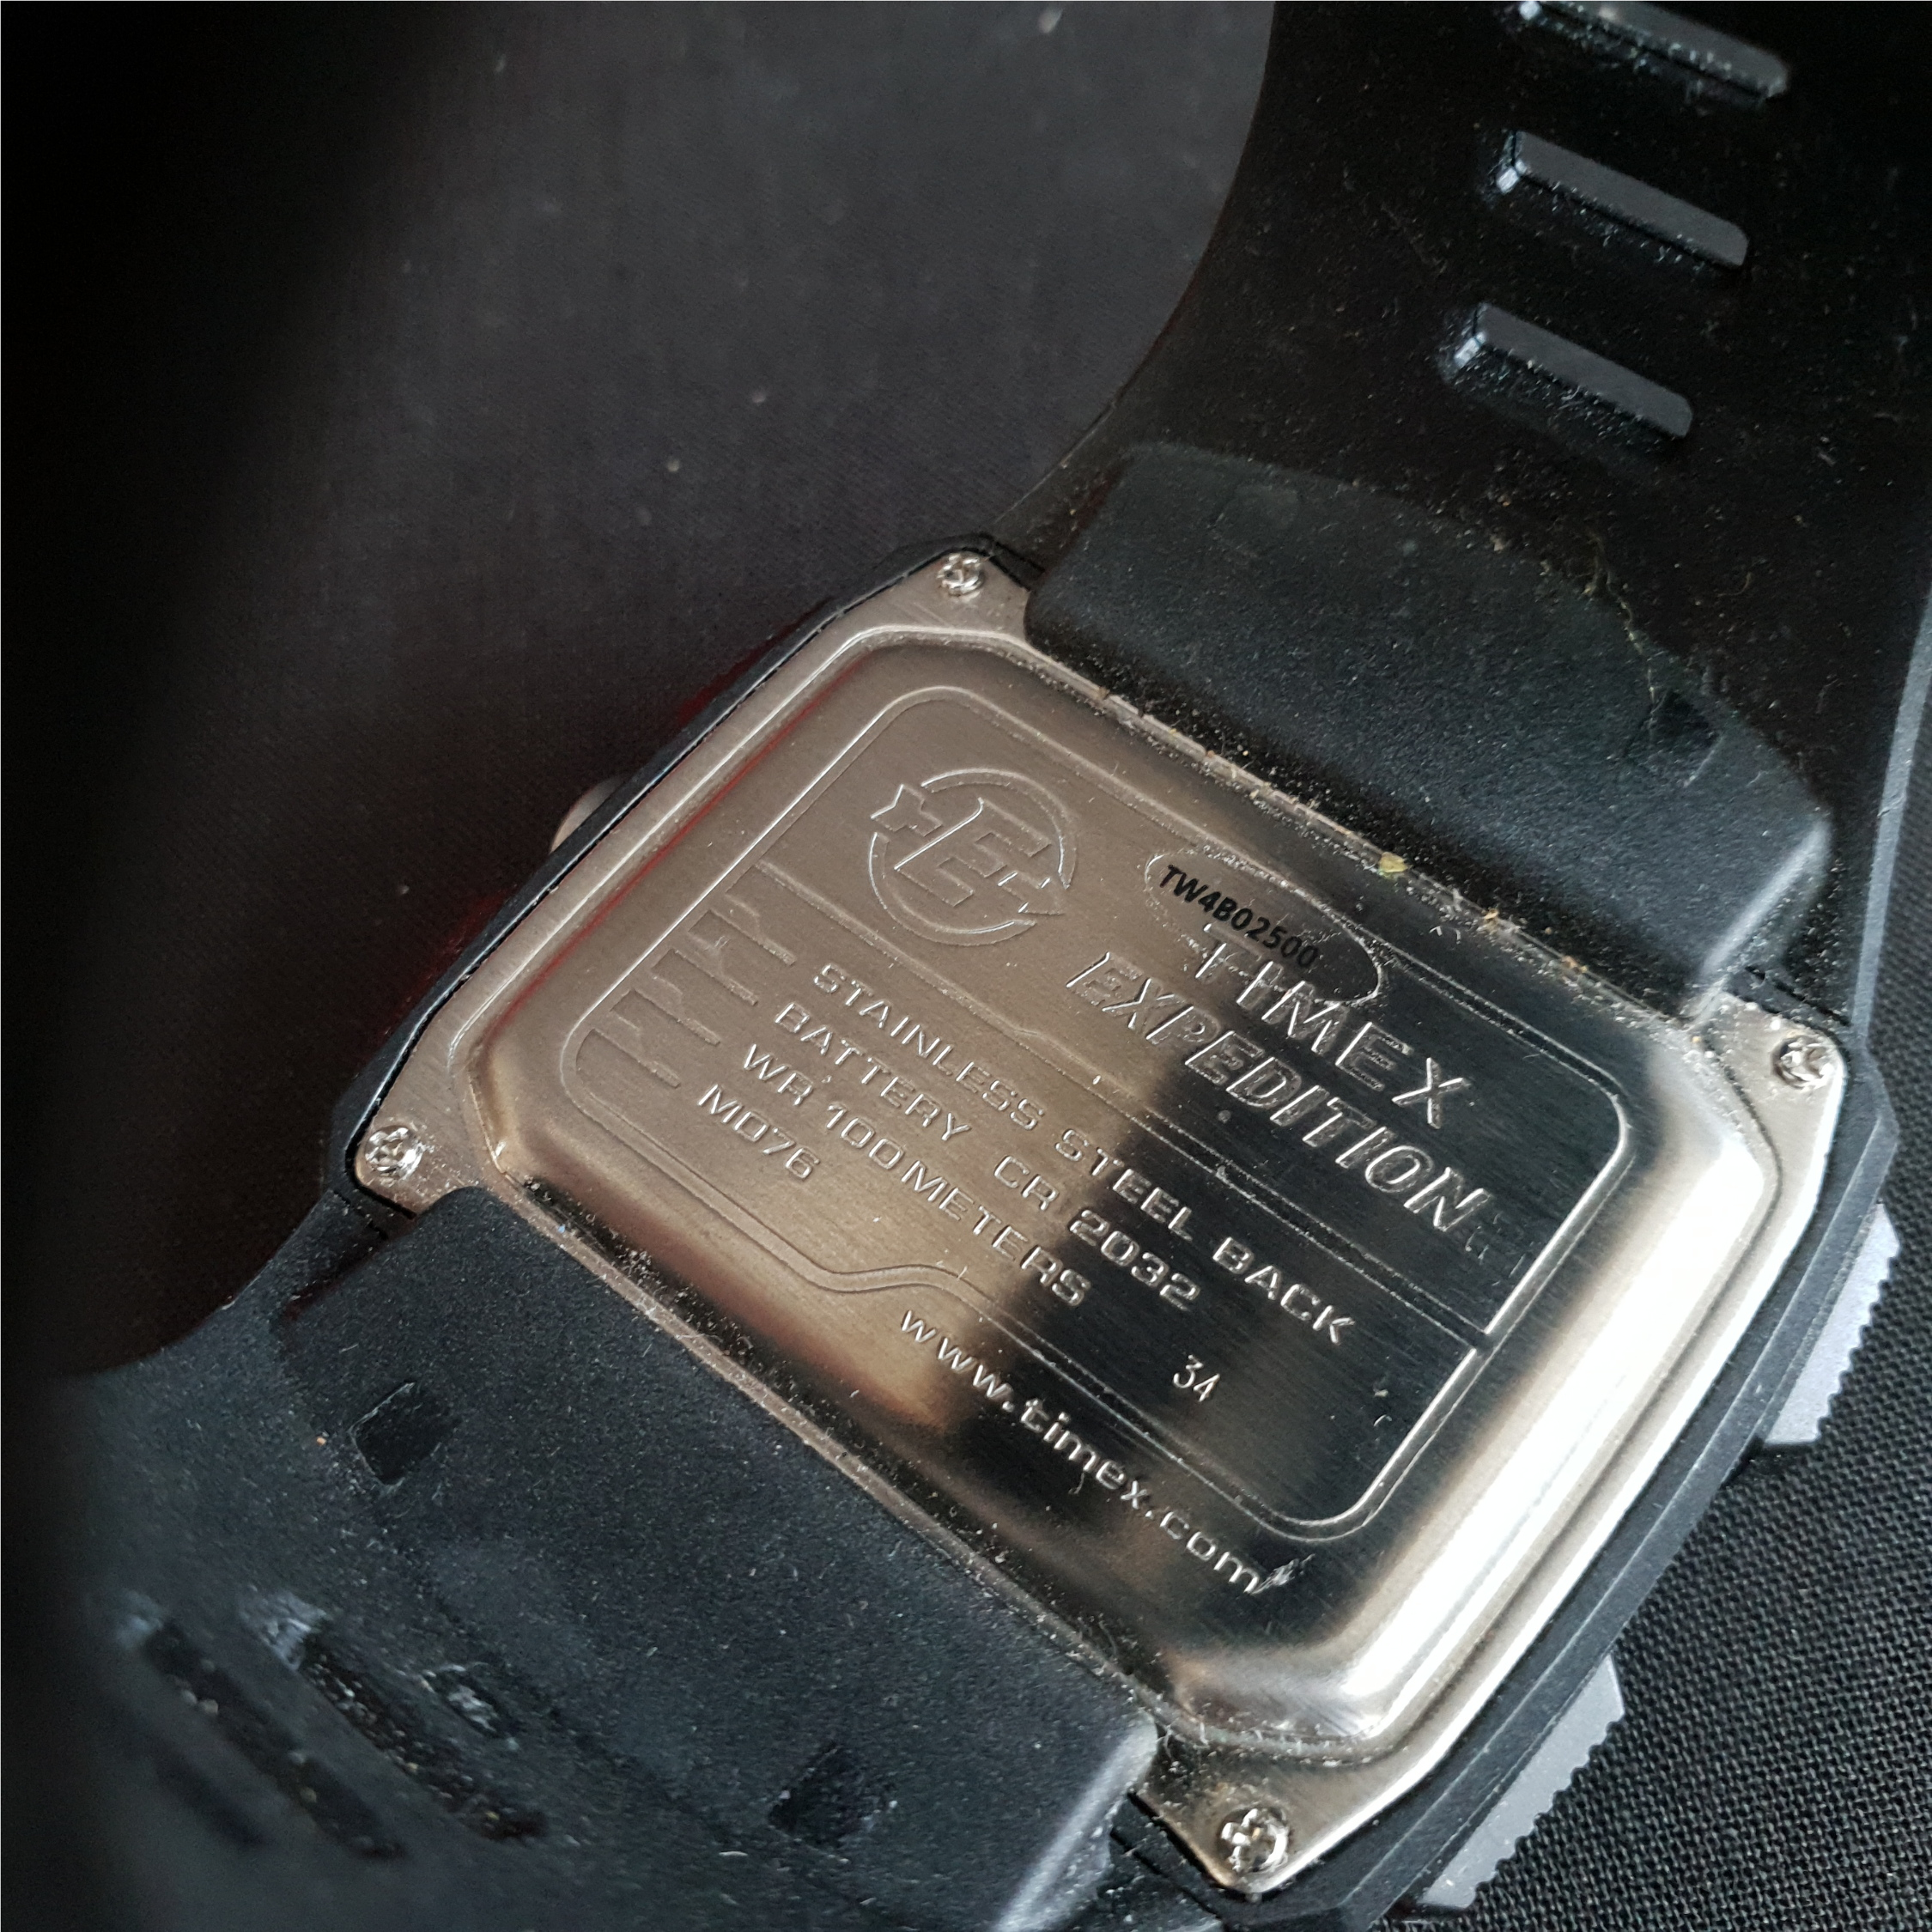 Collectable Timex Expedition Wrist Watch TW4B02500 - Image 4 of 4